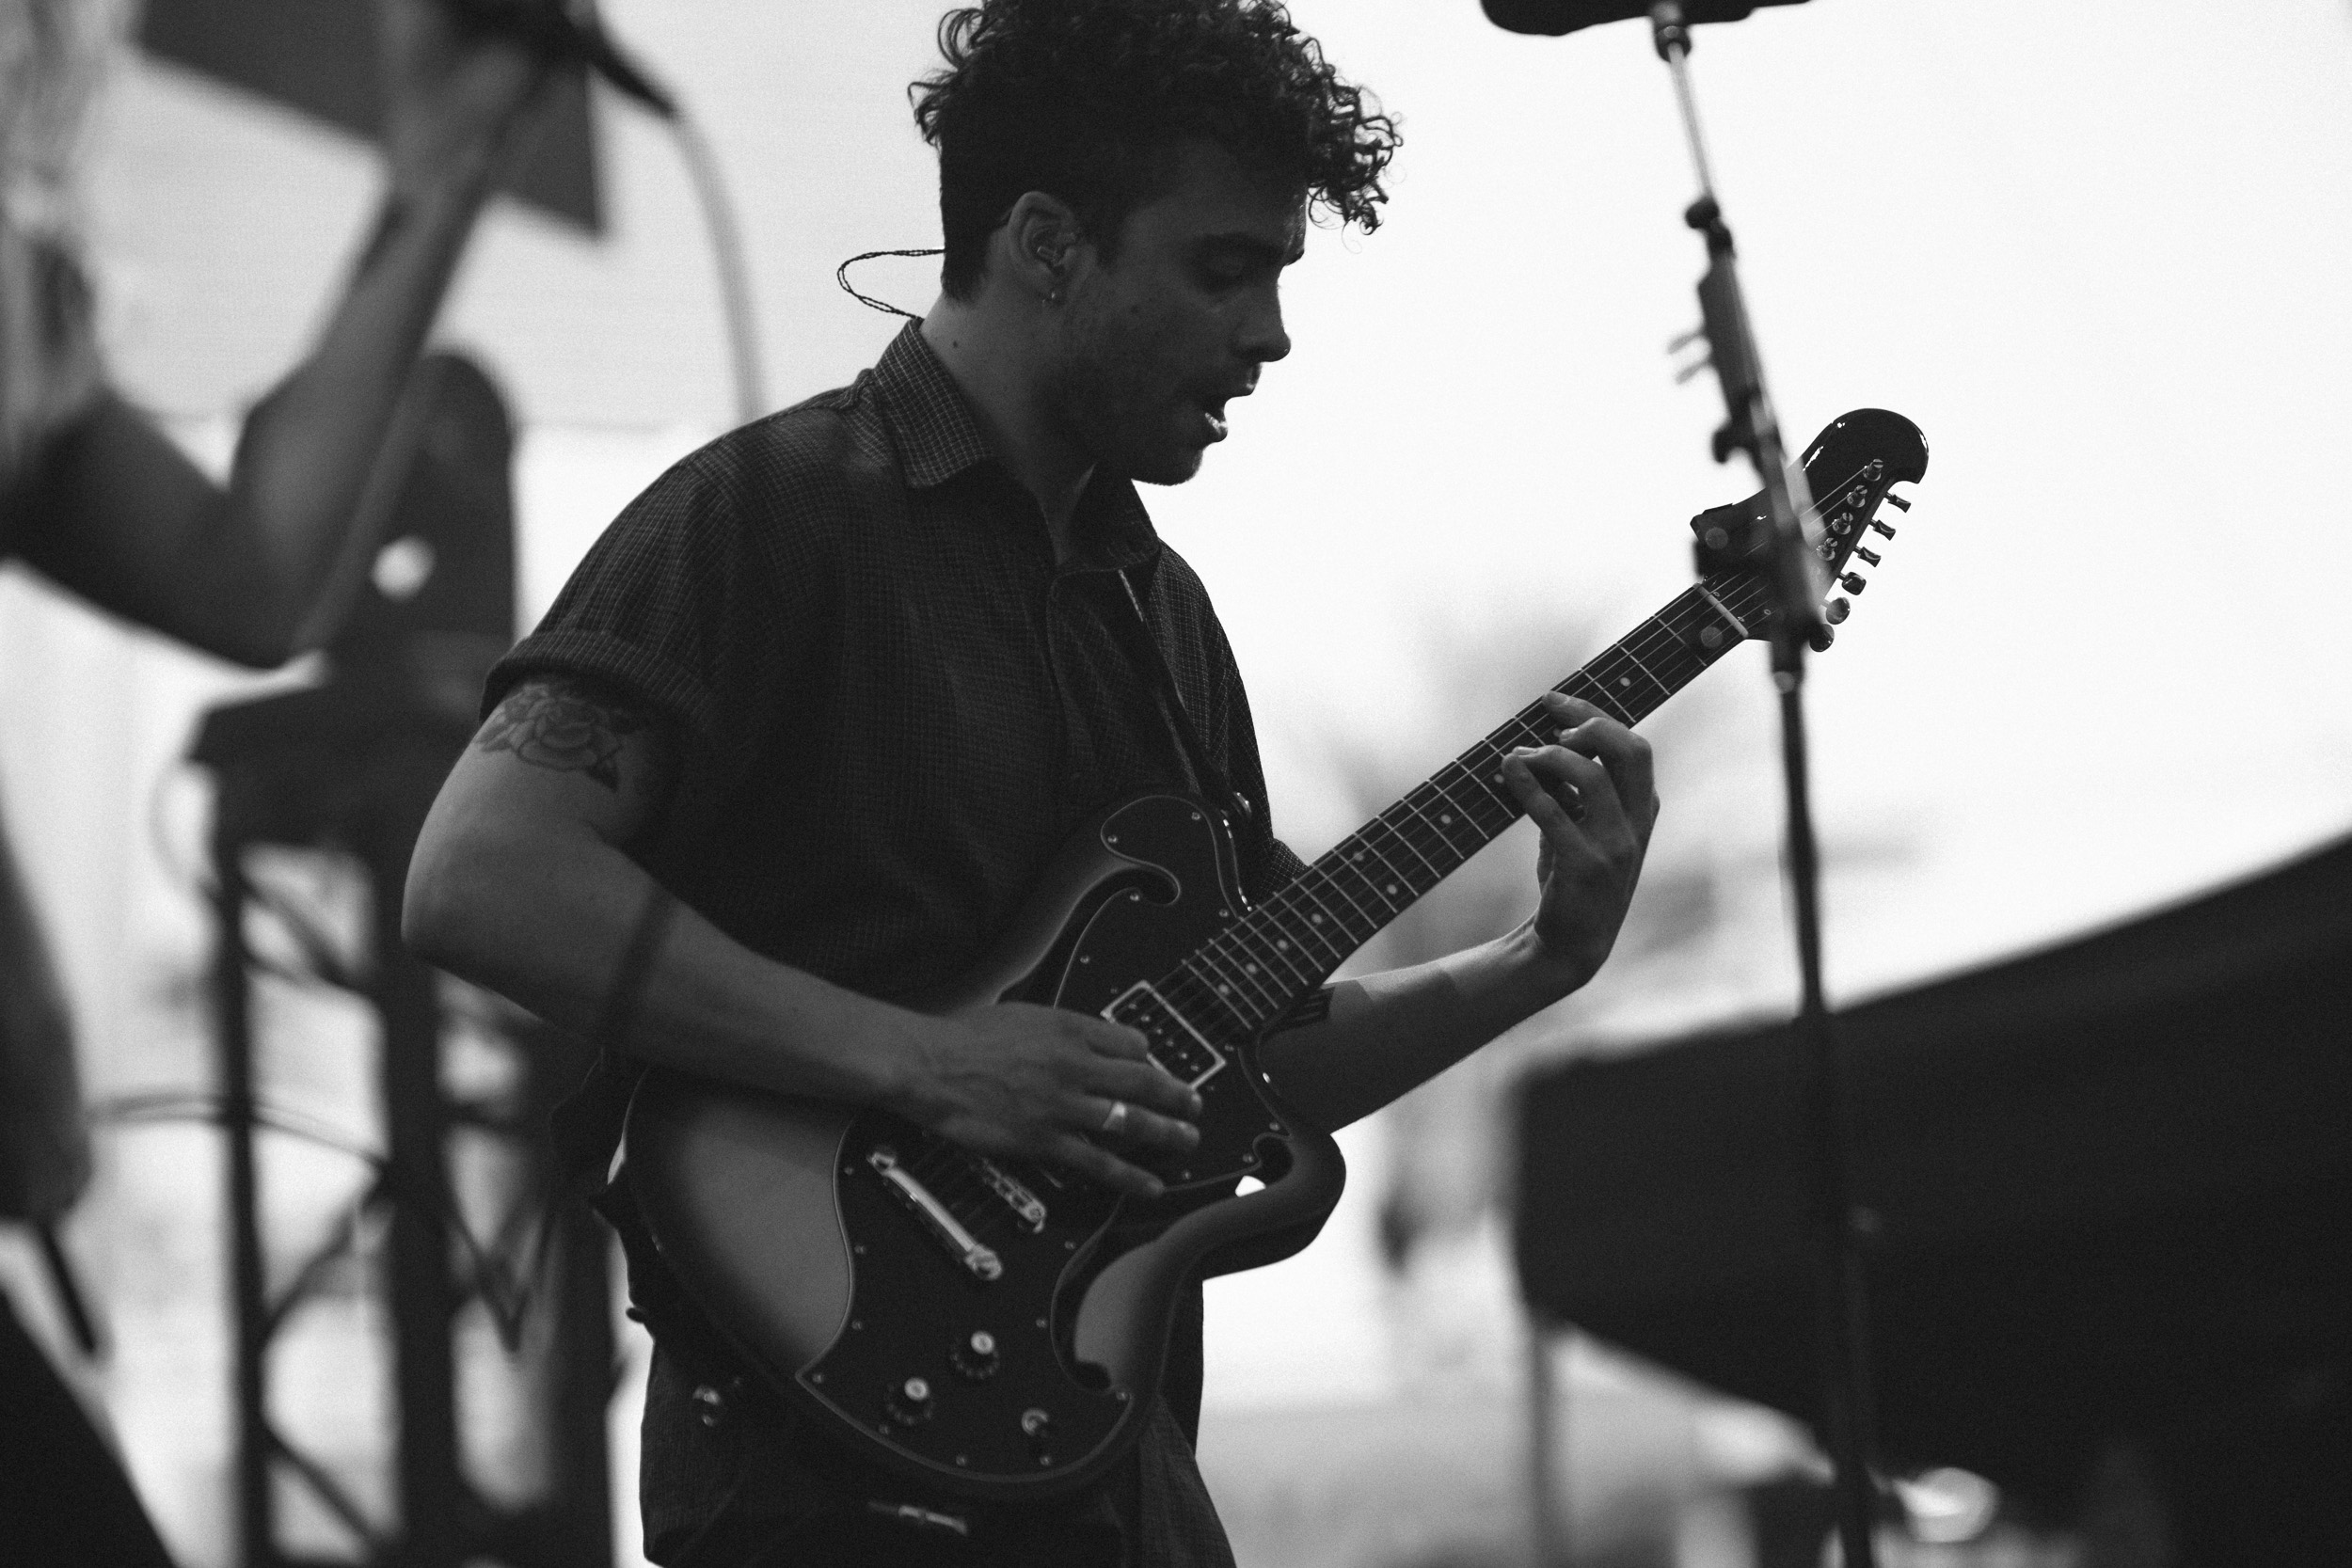 Taylor York of Paramore at KROQ Weenie Roast 2017